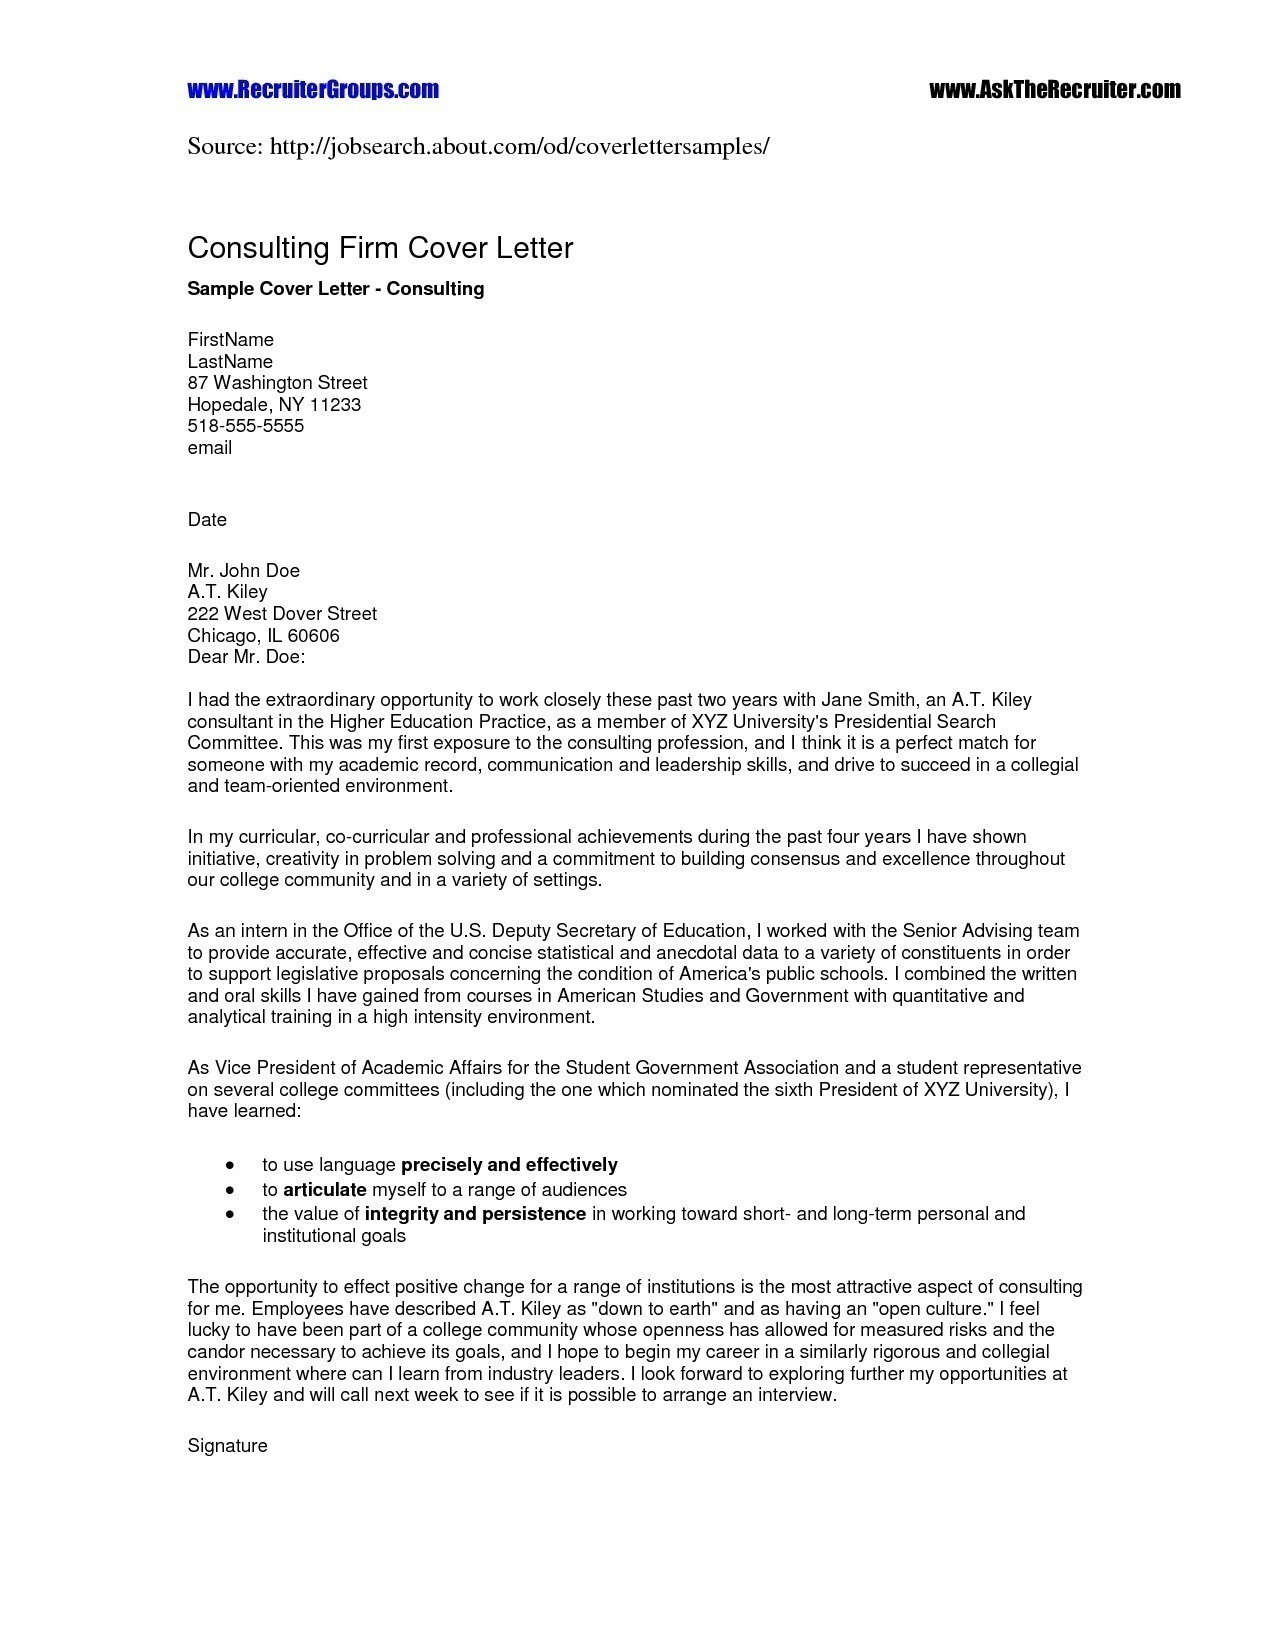 Letter Confirming Employment Free Template - How to Write Job Fer Letter Fresh Job Fer Letter Sample Best Job